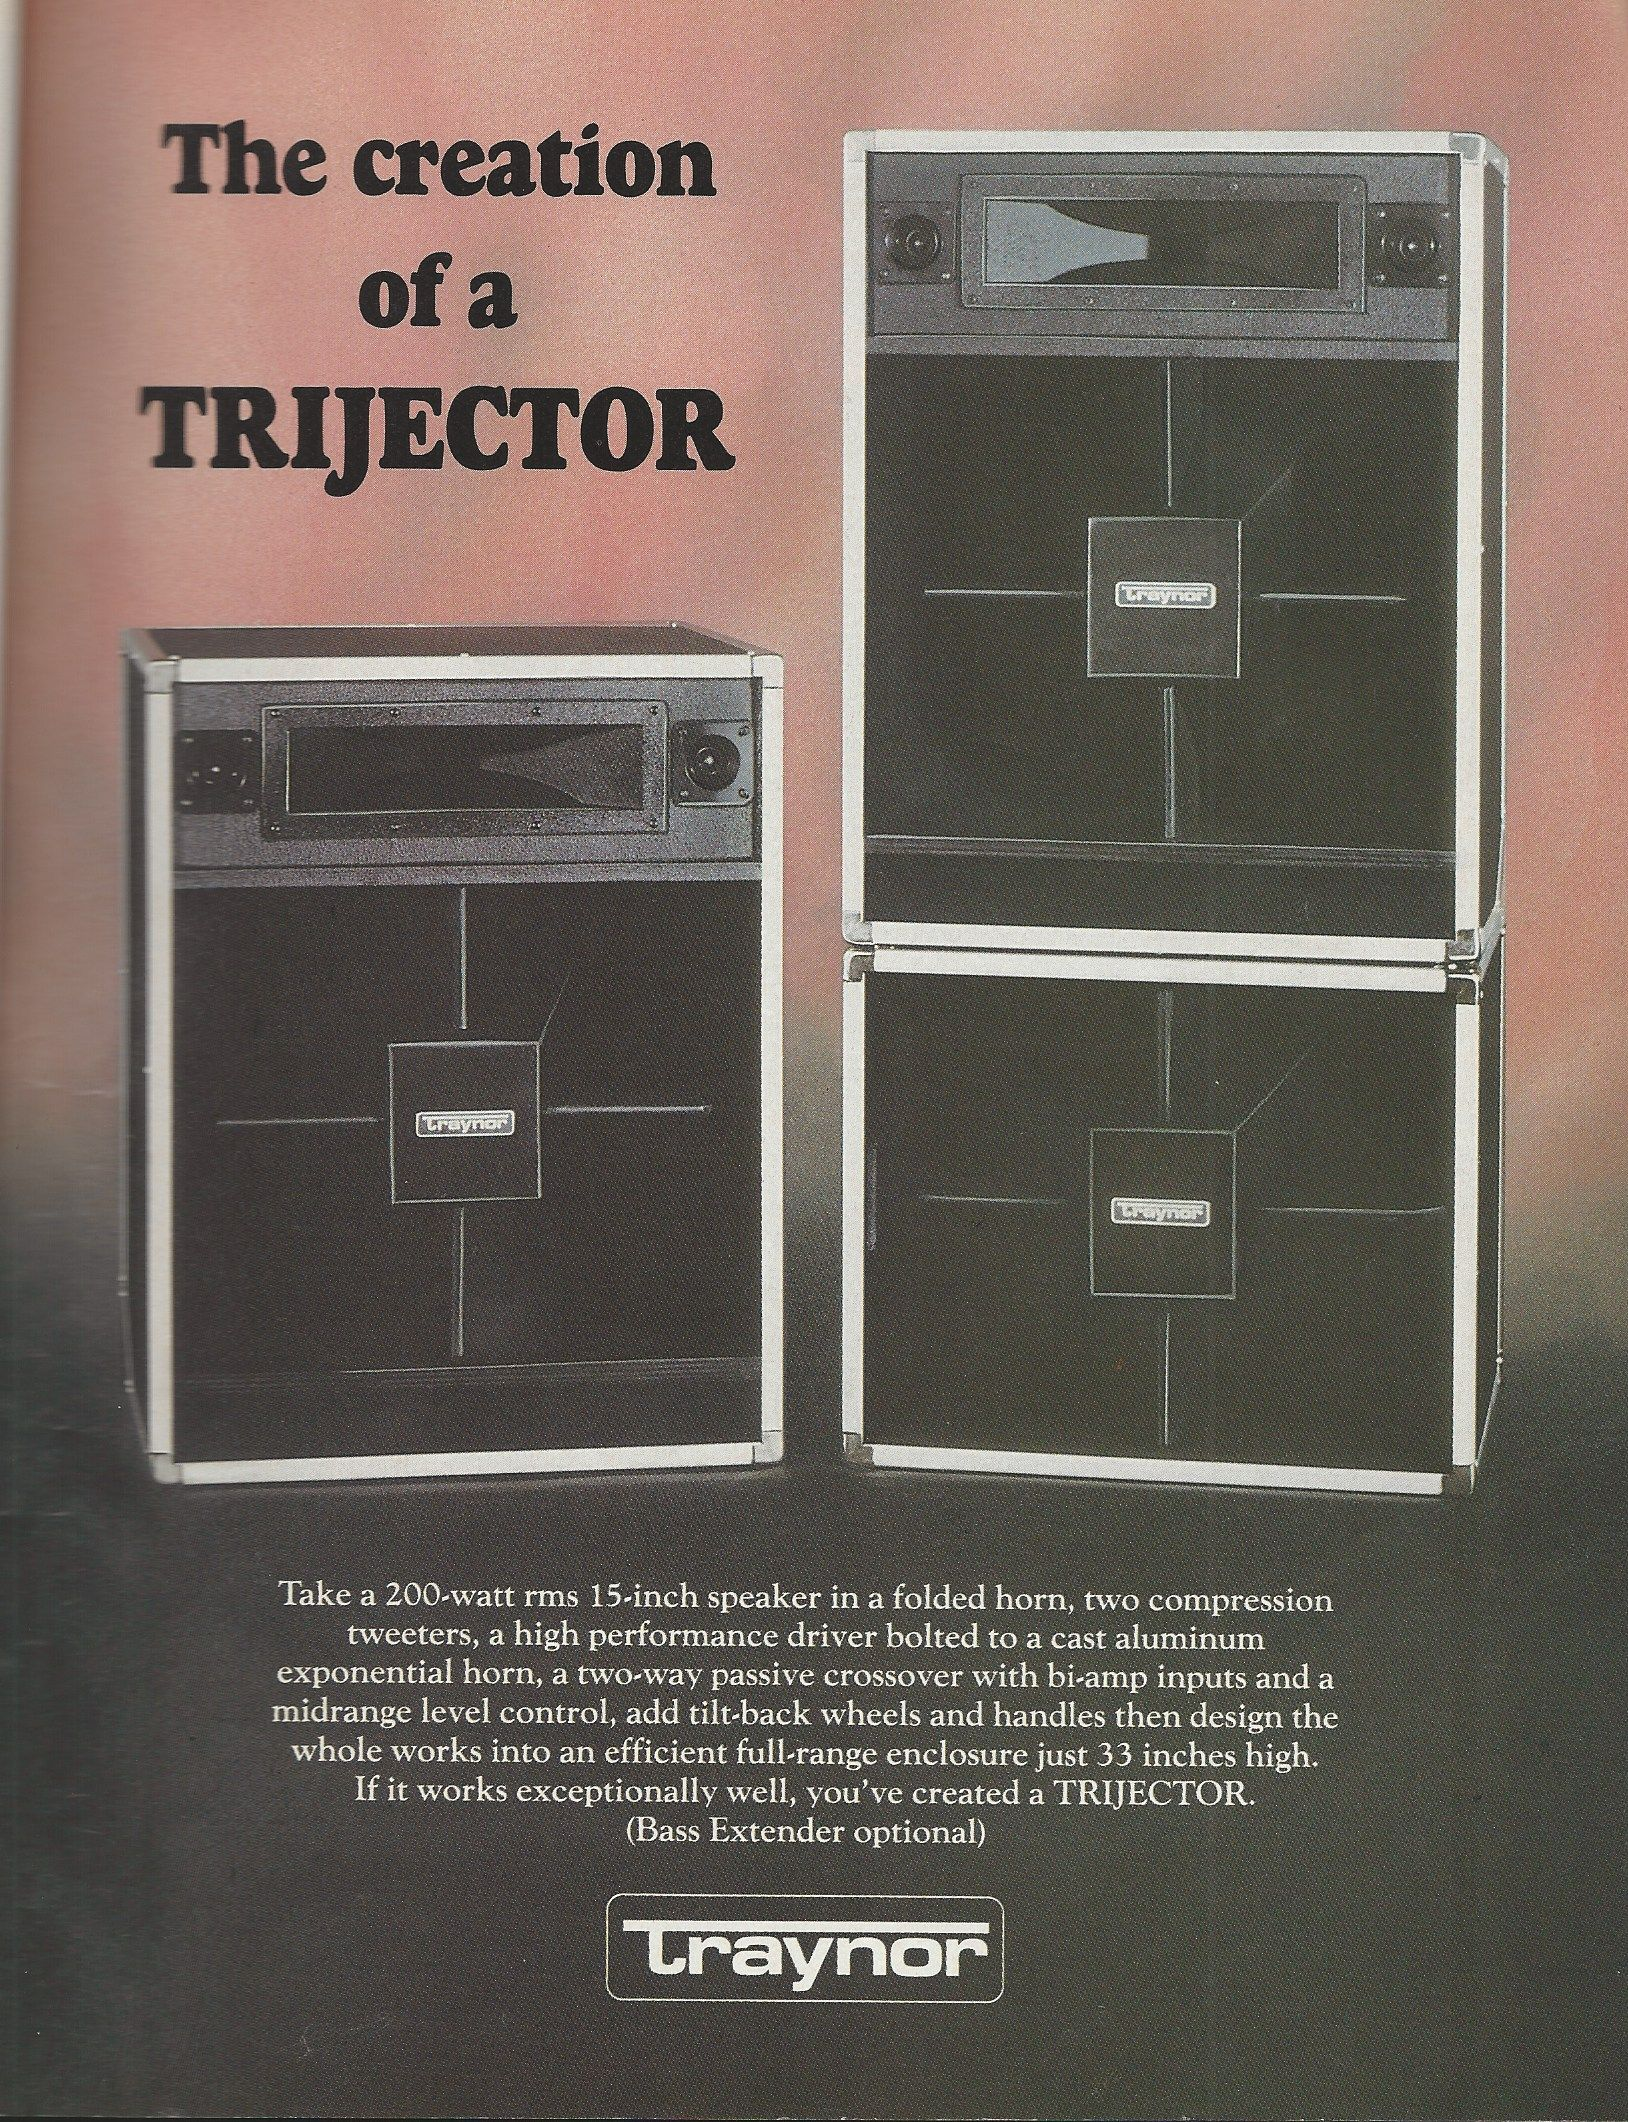 Image result for traynor trijector sales ad